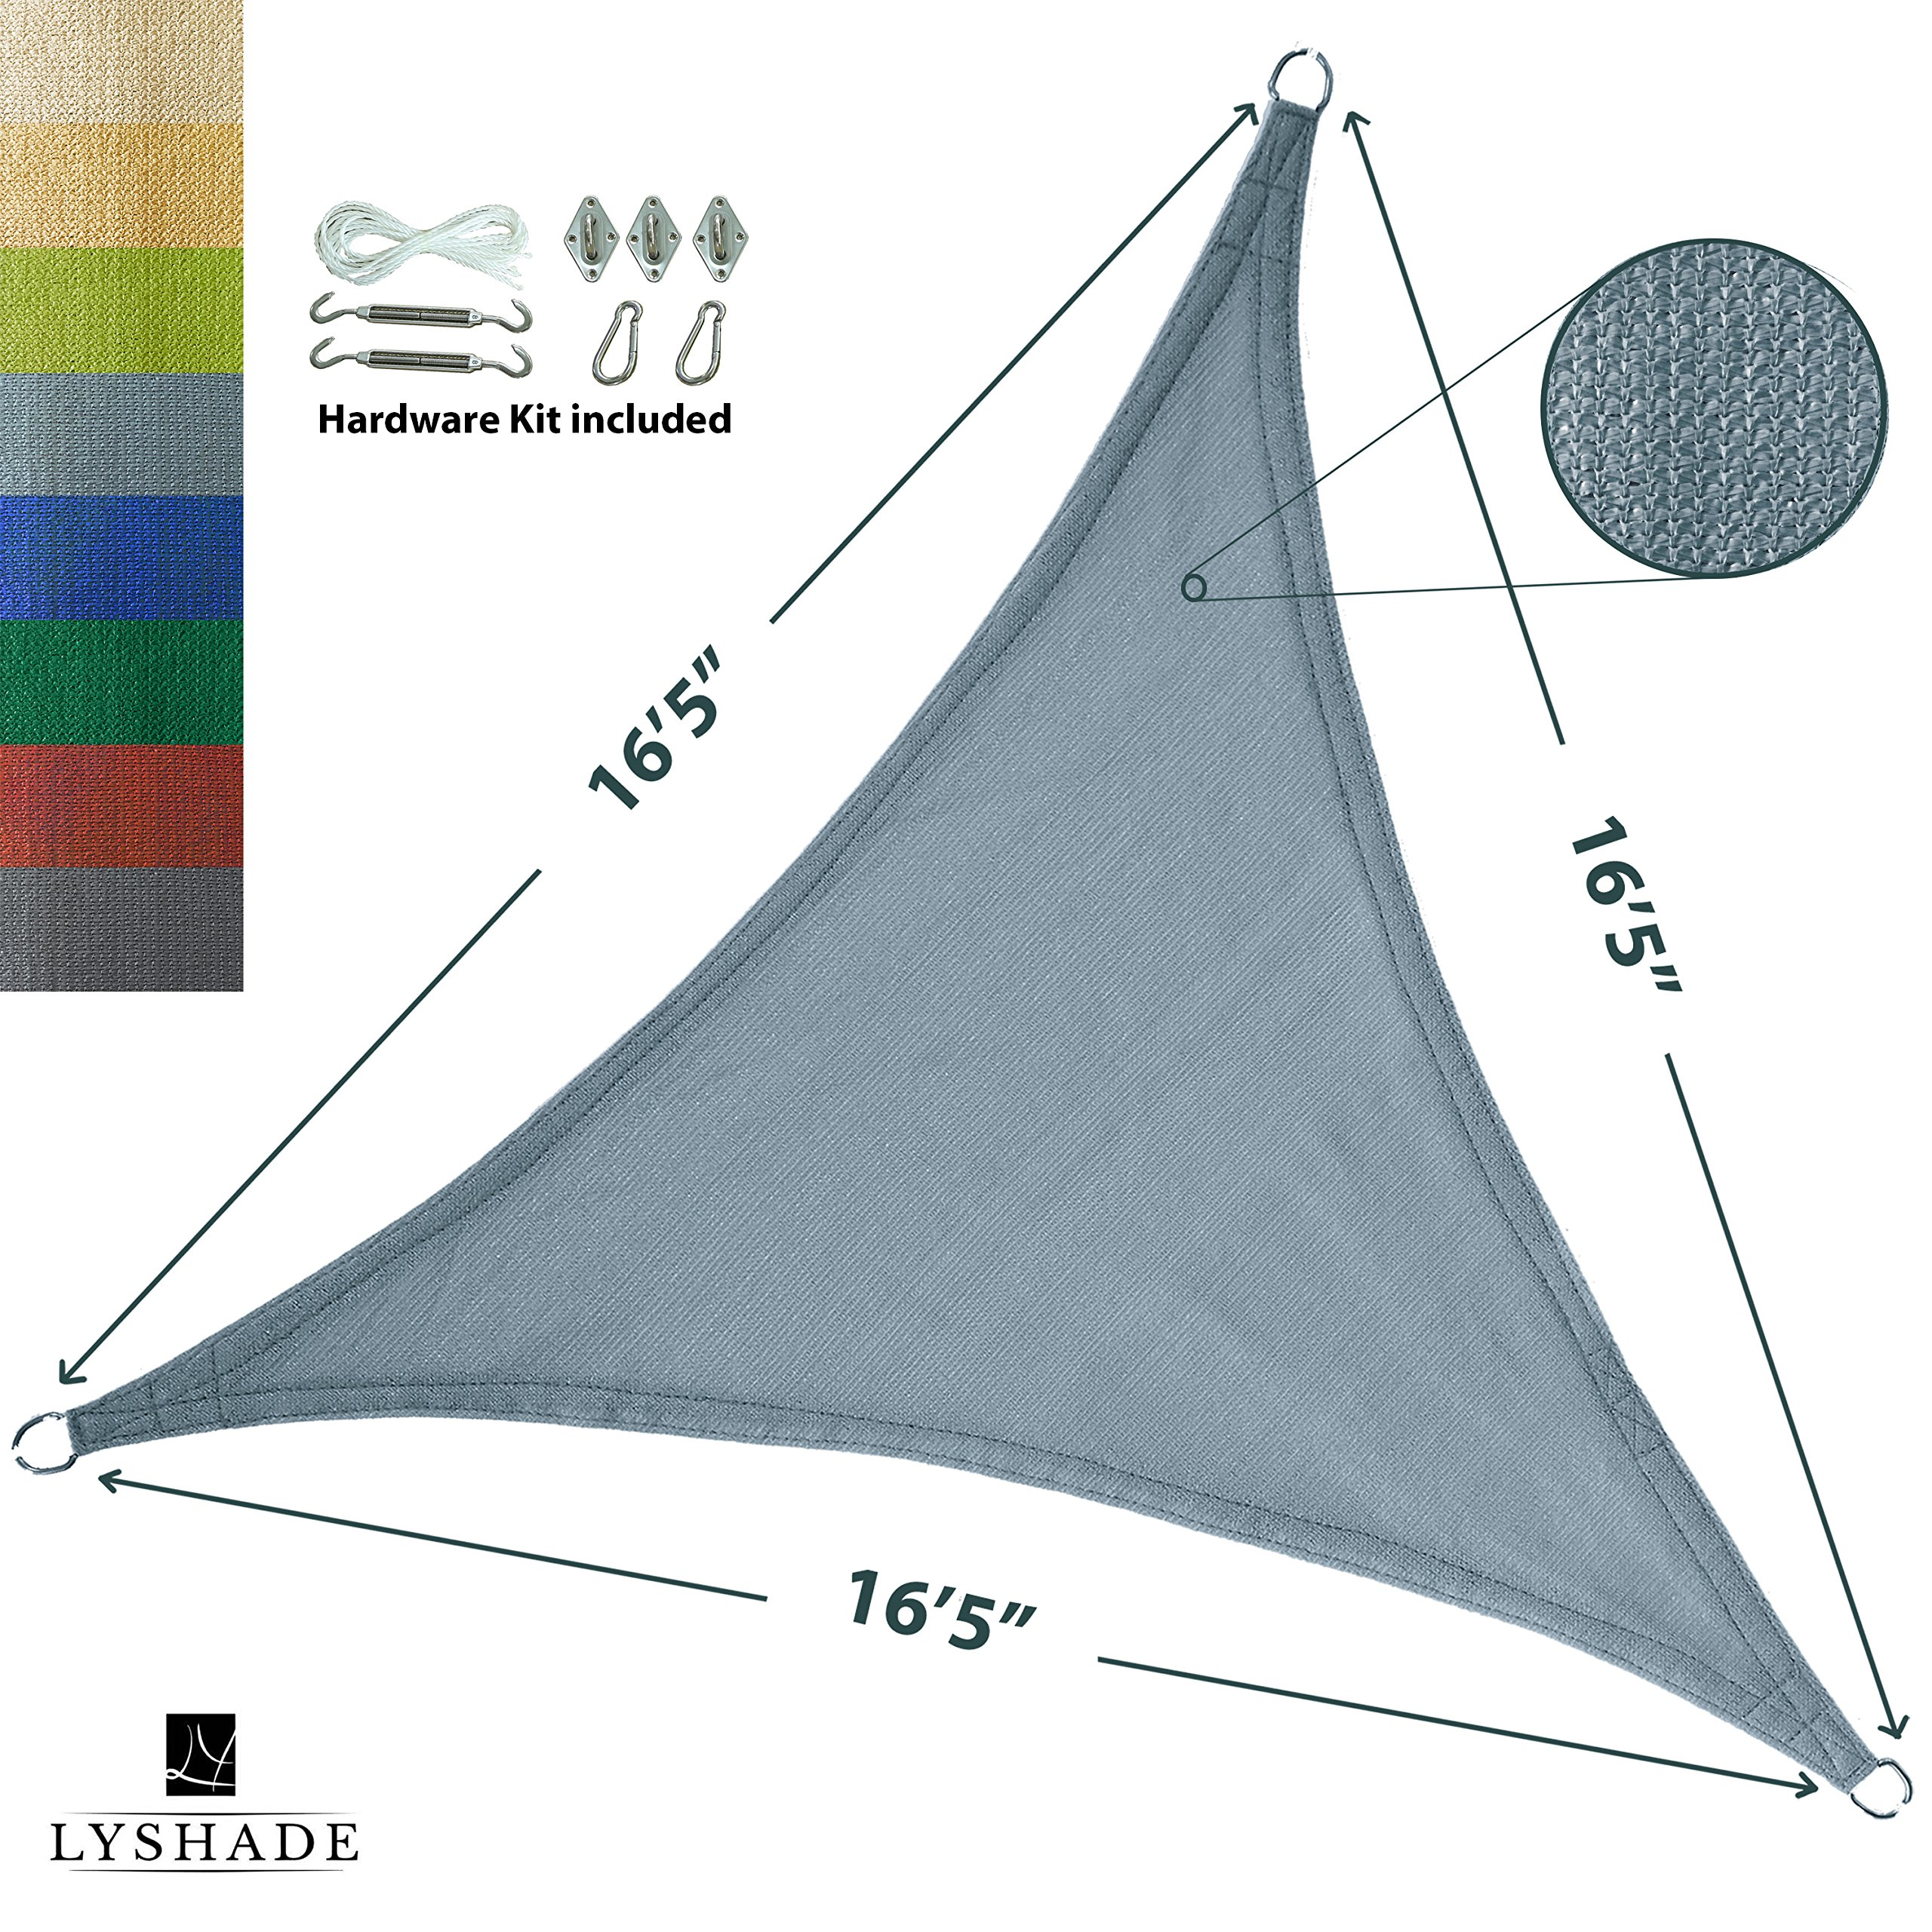 LyShade 16'5'' x 16'5'' x 16'5'' Triangle Sun Shade Sail Canopy with Stainless Steel Hardware Kit (Cadet Blue) - UV Block for Patio and Outdoor by LyShade